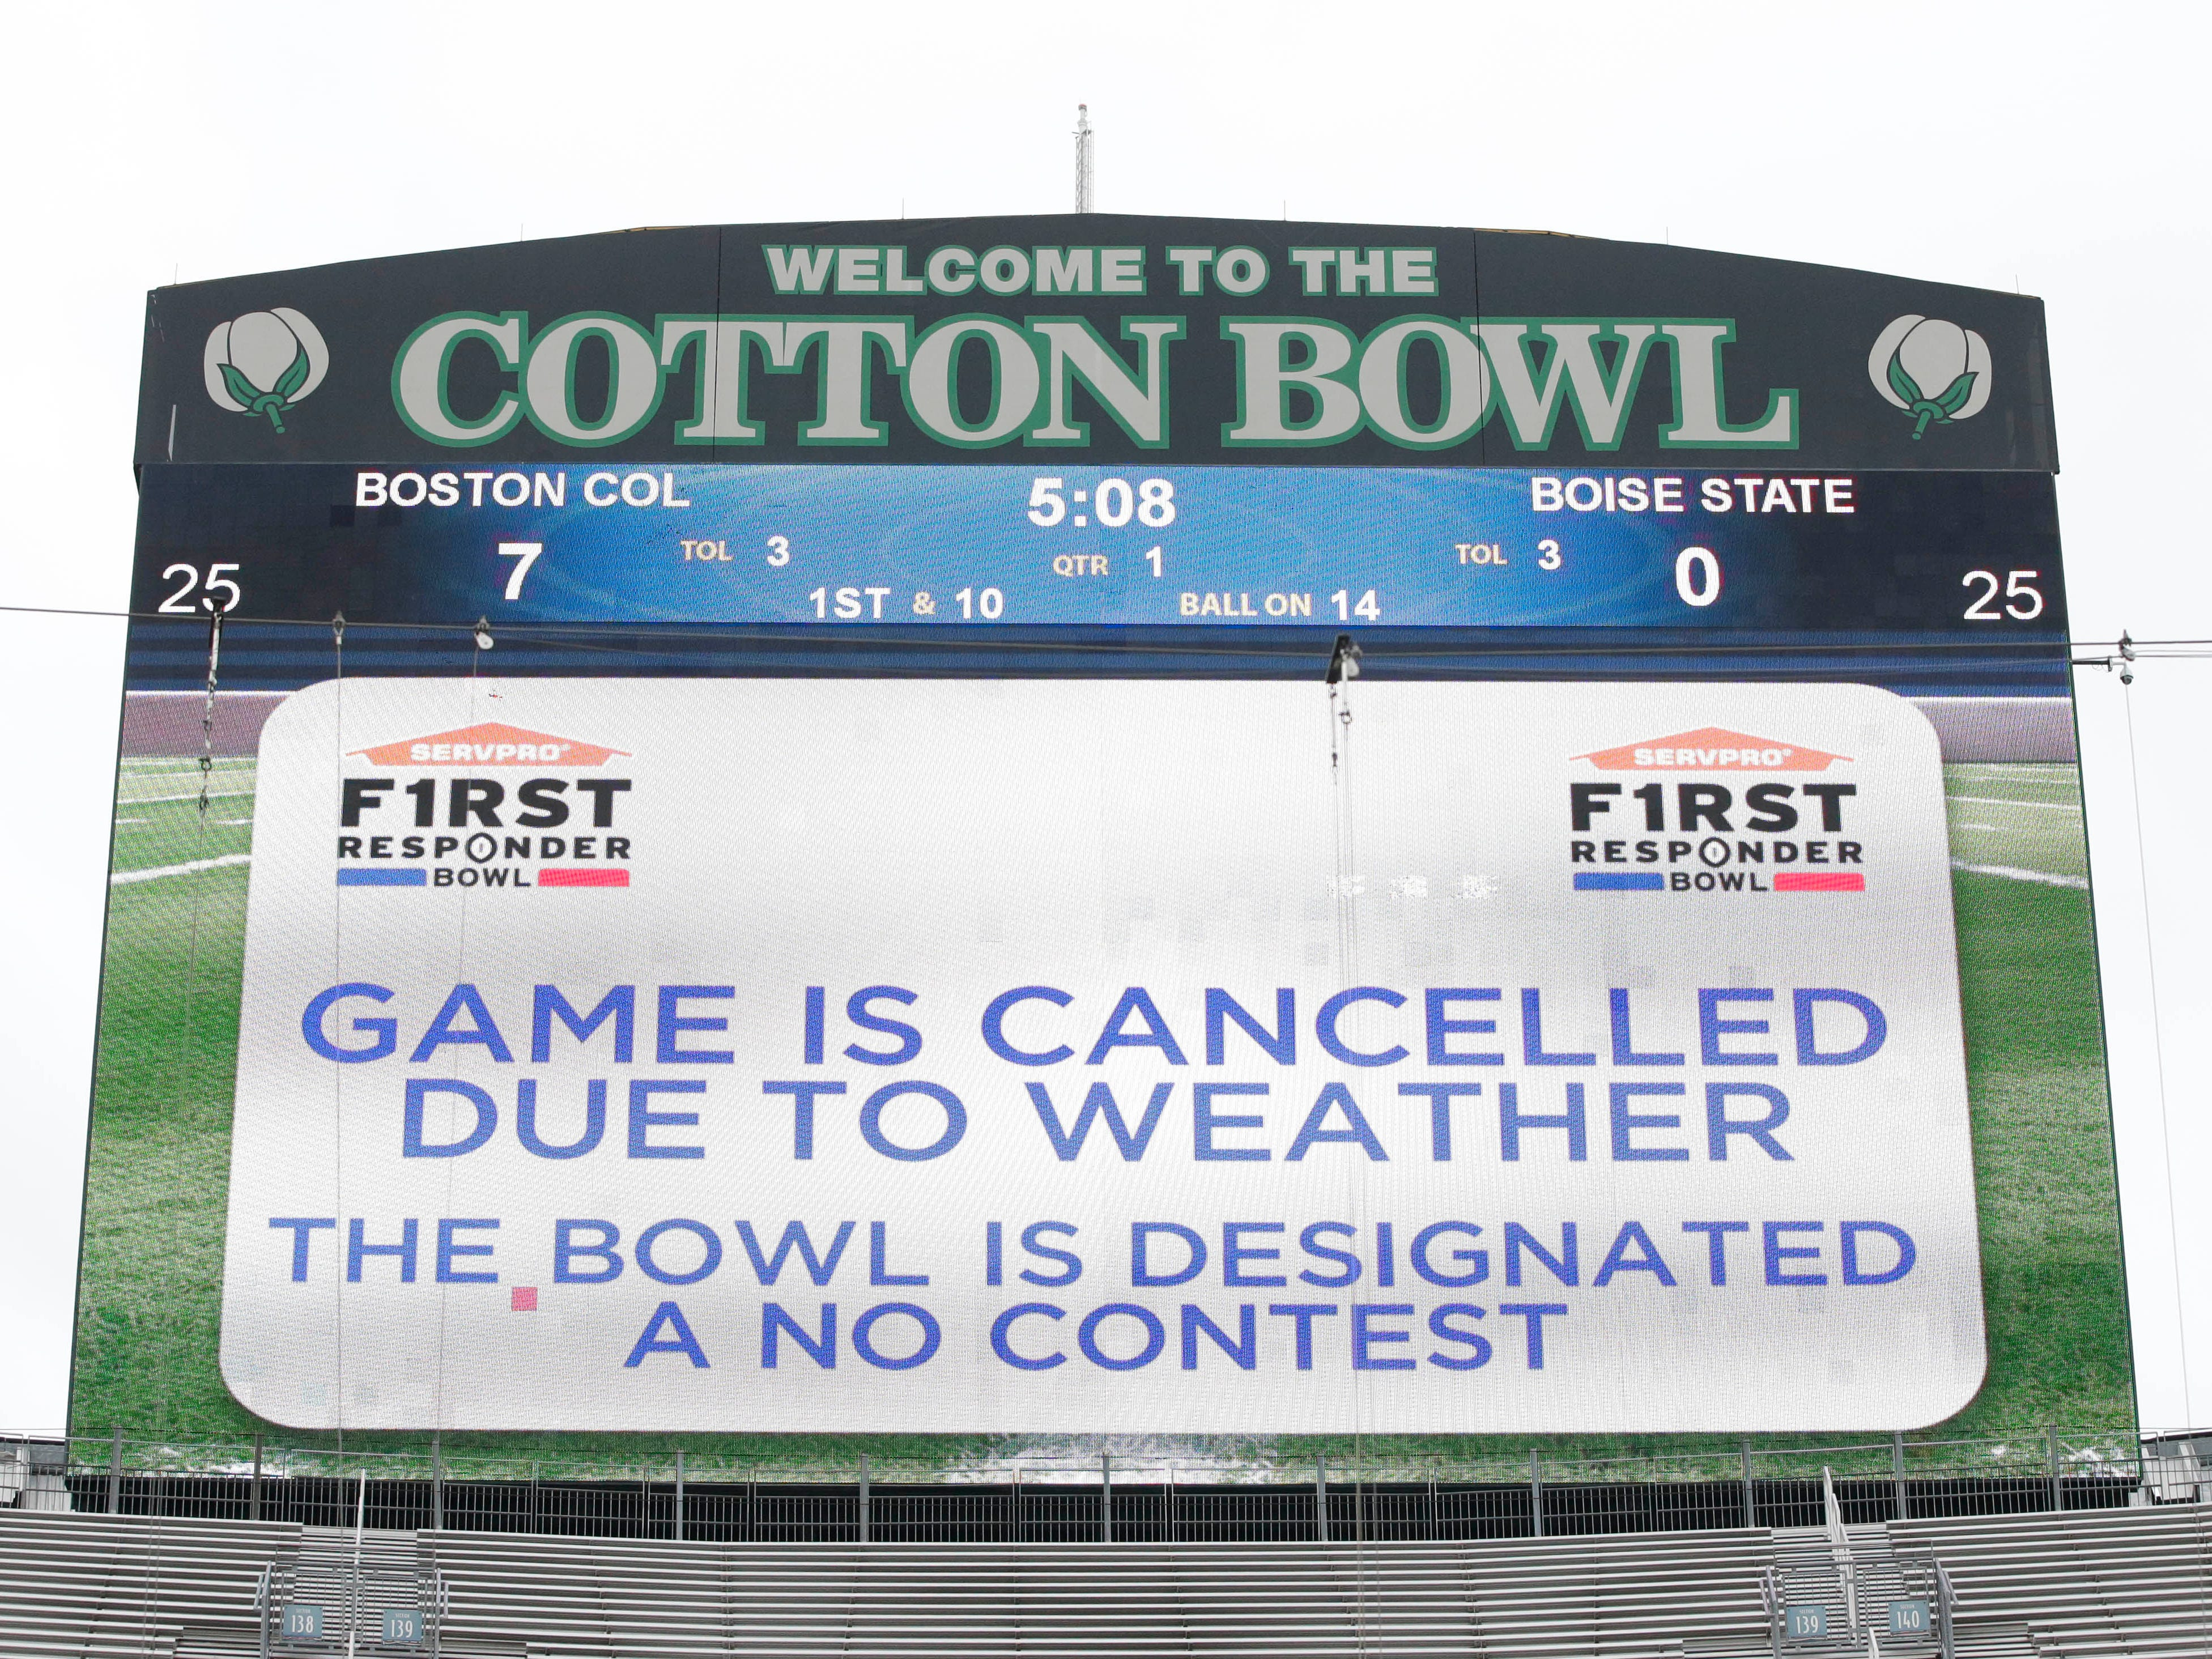 The scoreboard shows that the First Responder Bowl at the Cotton Bowl between Boston College and Boise State  was canceled.